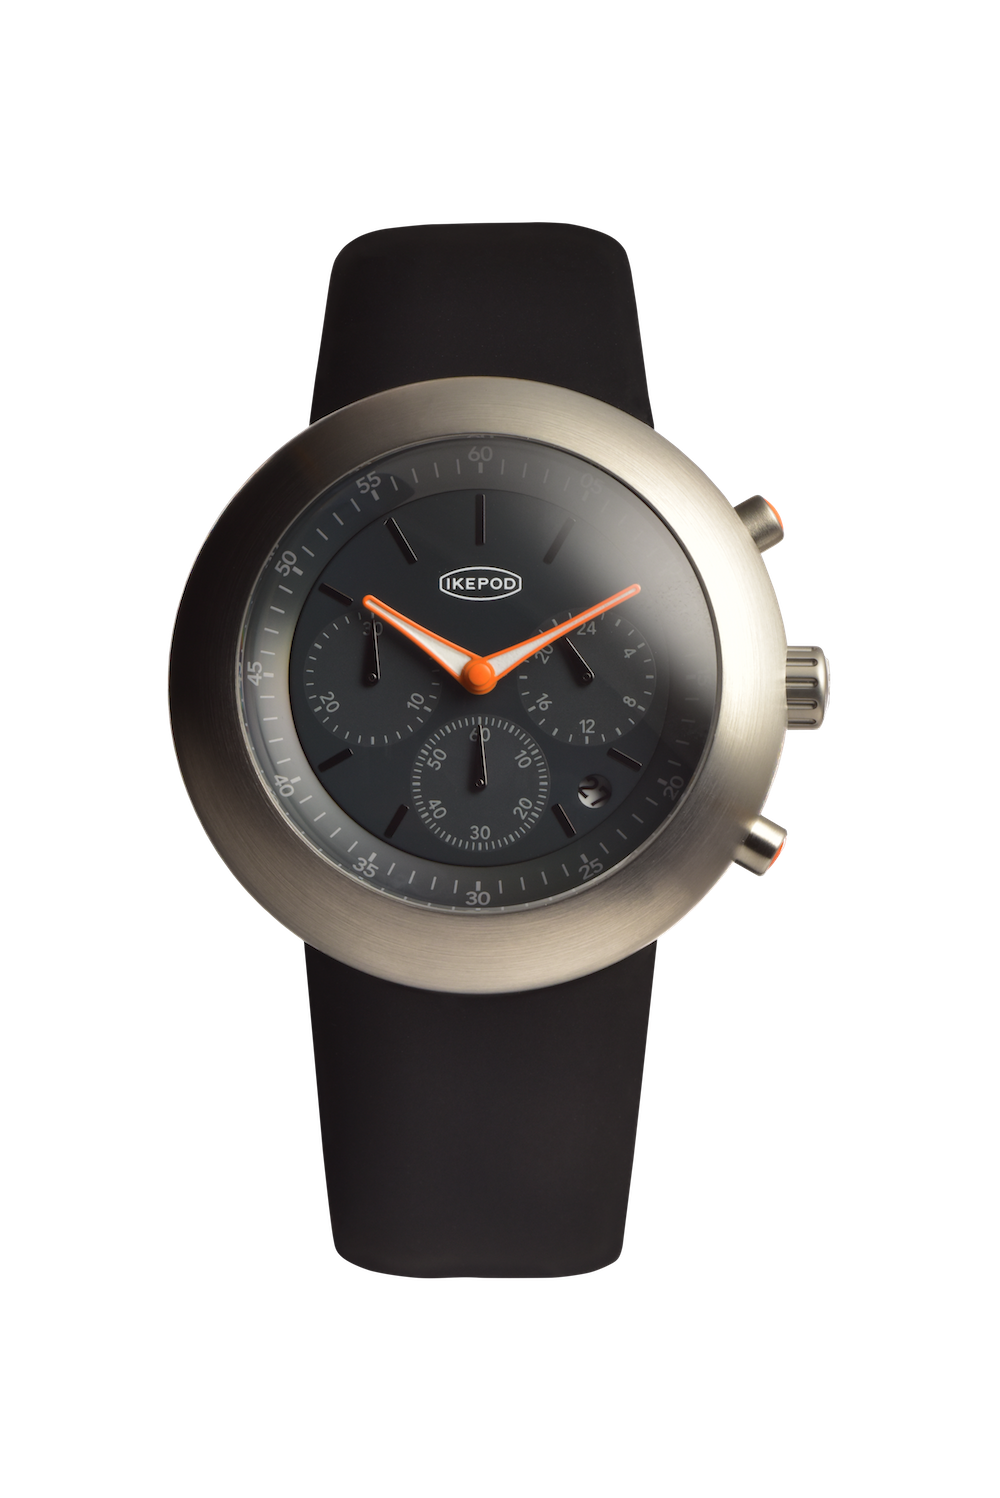 Часы Ikepod Chronopod HEY JOE 014